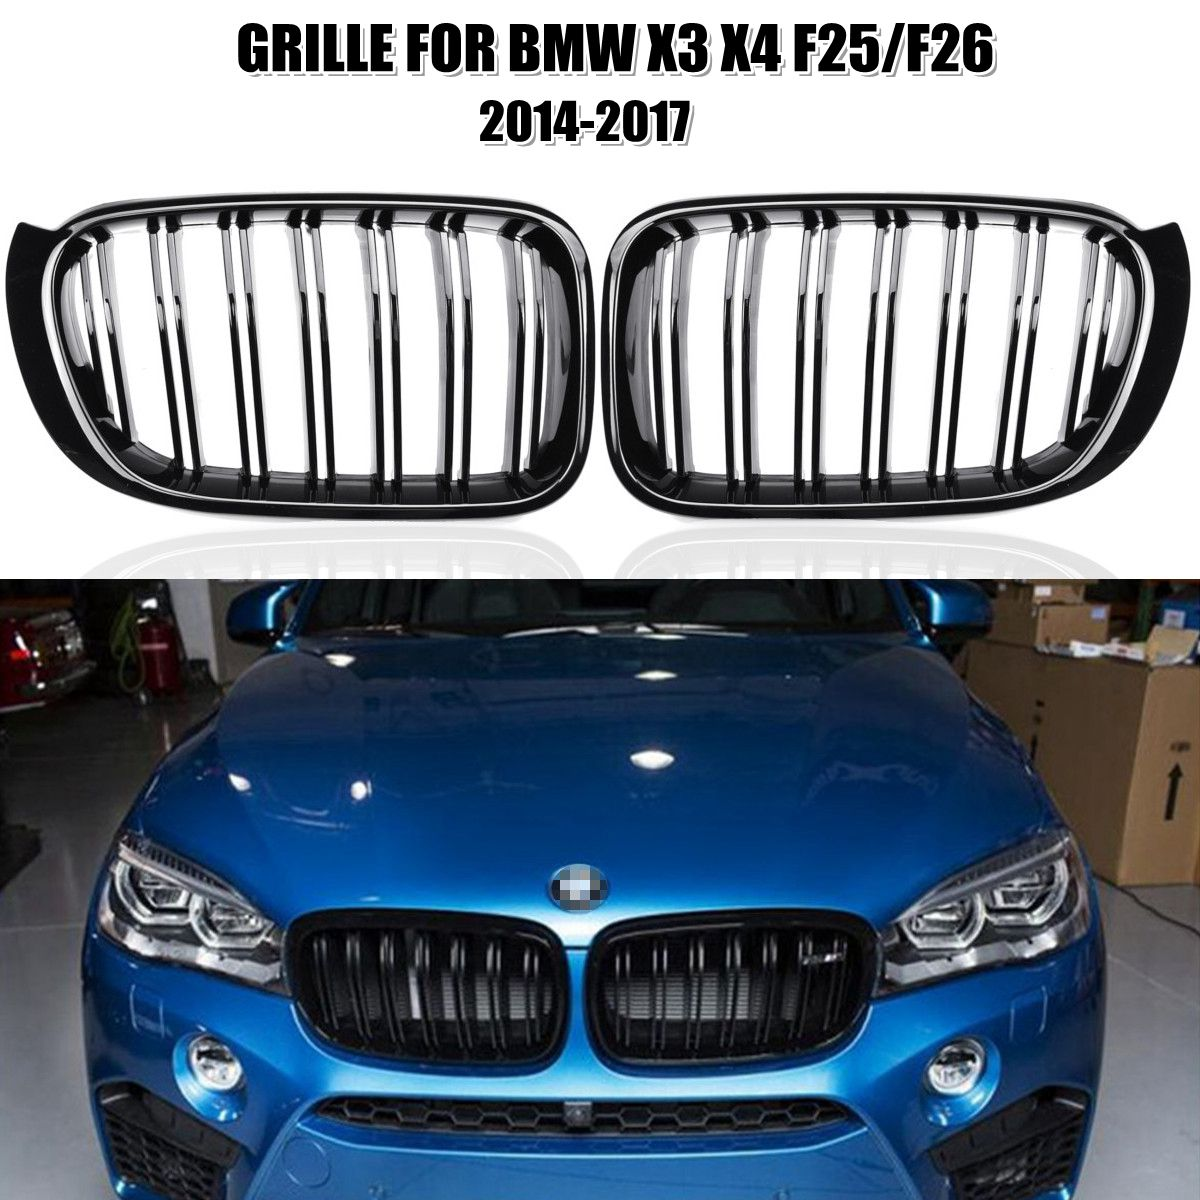 2Pcs M Style Car Front Kidney Grill Grille Gloss Black for BMW X3 X4 F25/F26 2014 2015 2016 2017